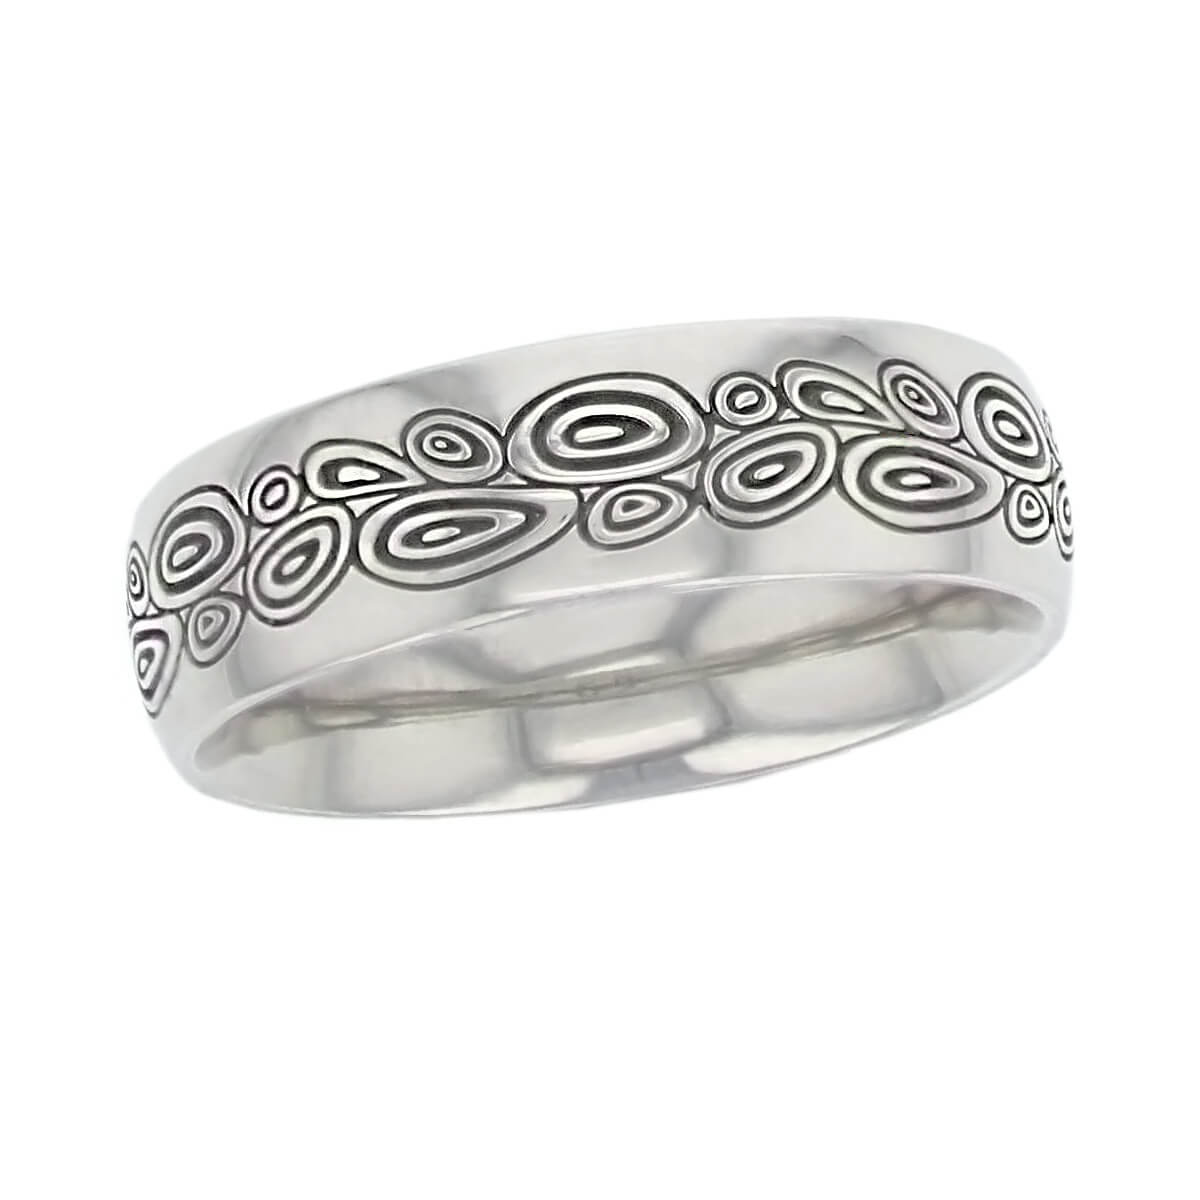 puddle pattern palladium mens wedding rin, gents dress ring, made by Faller